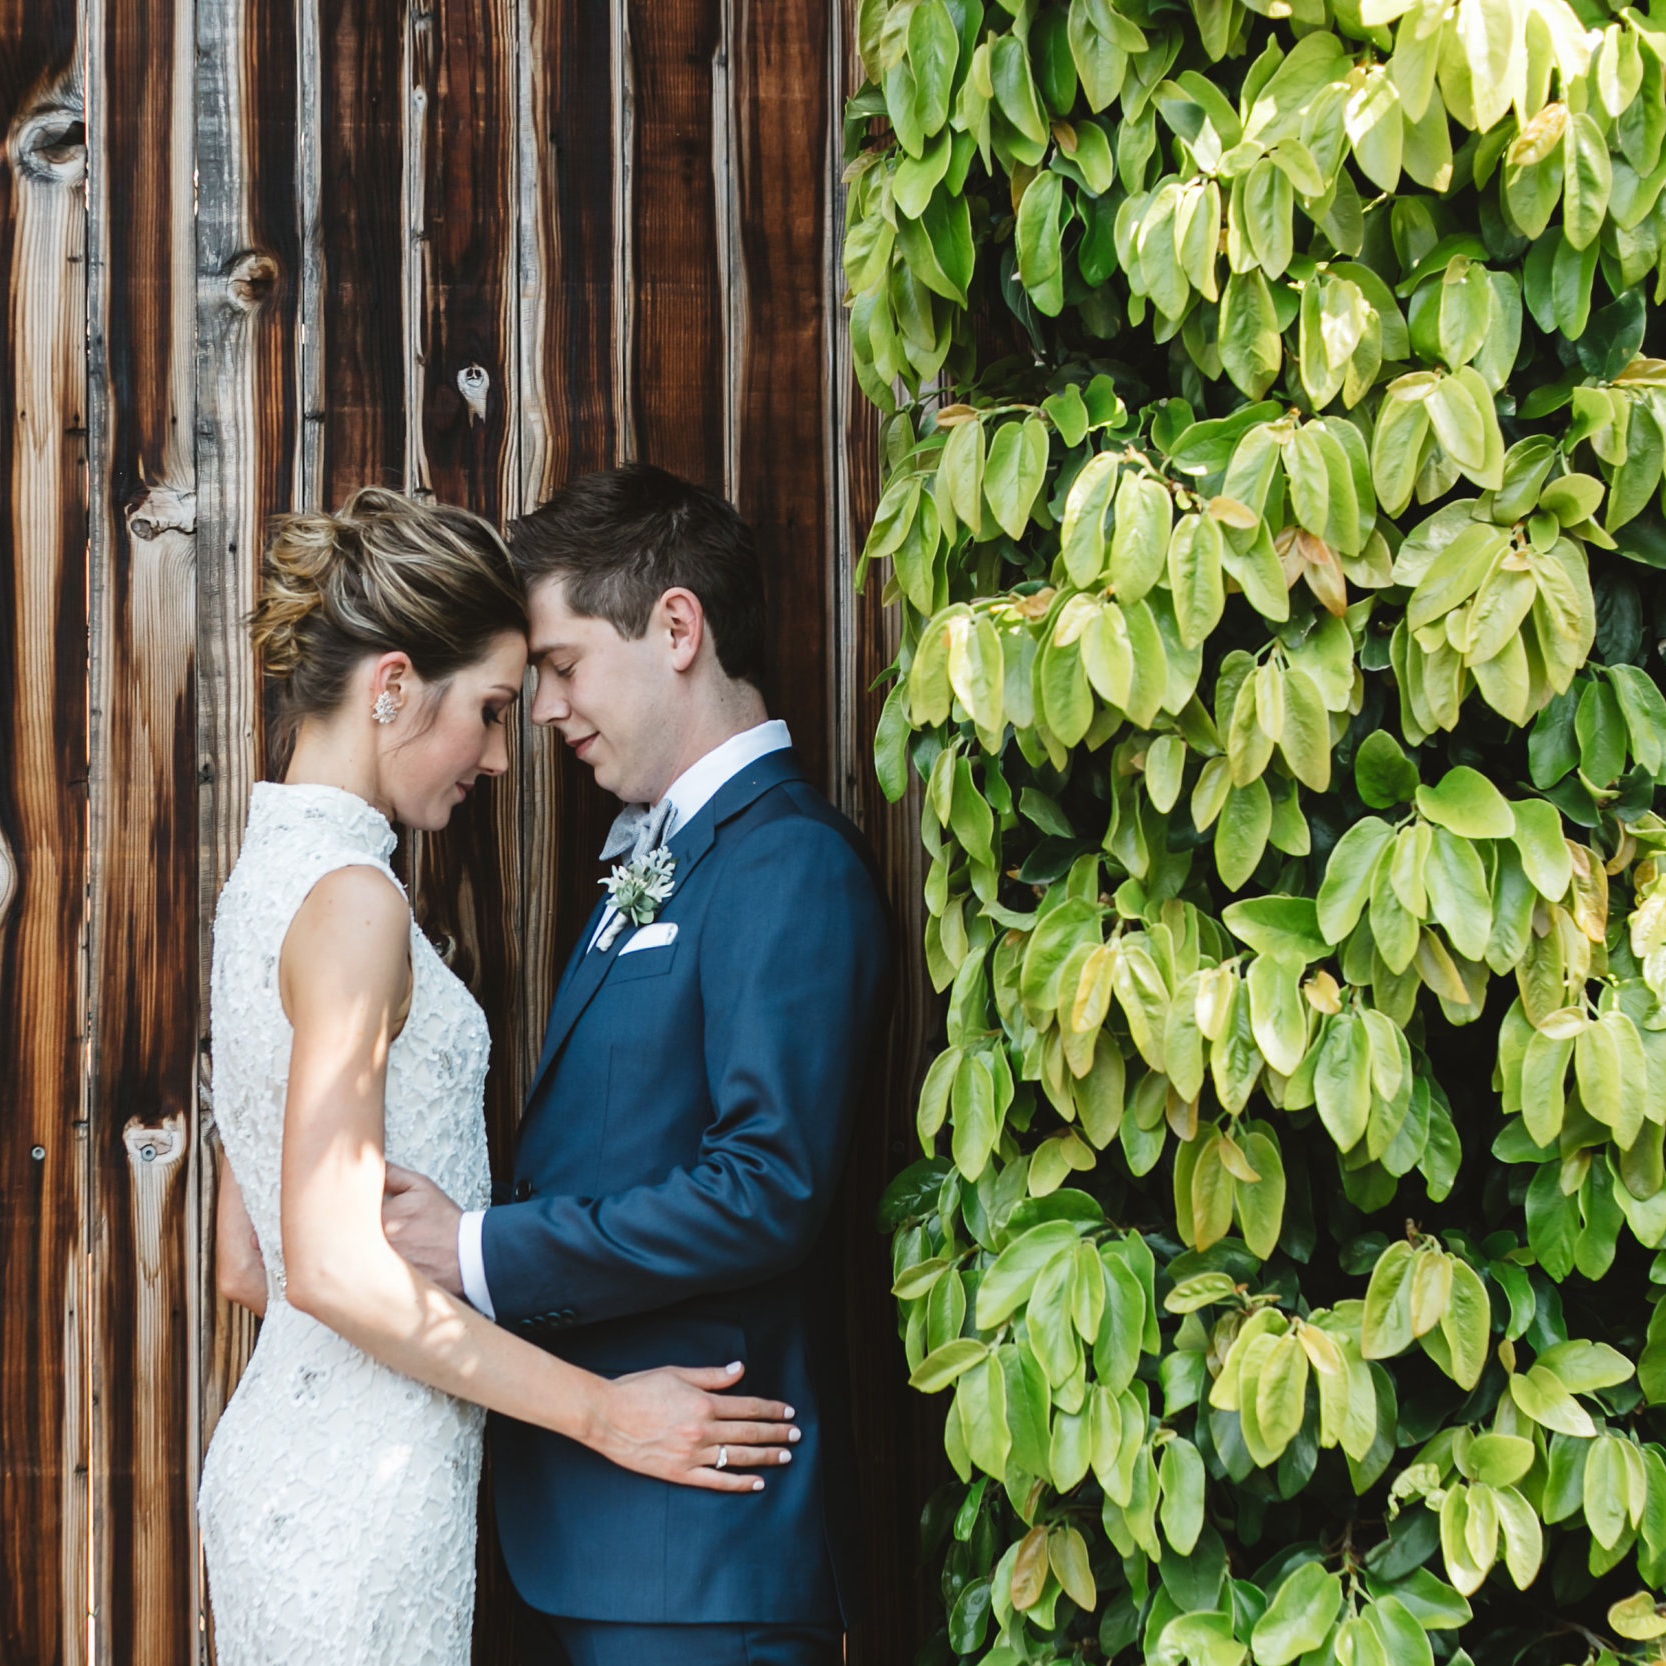 urban+weddings+in+port+melbourne.jpg